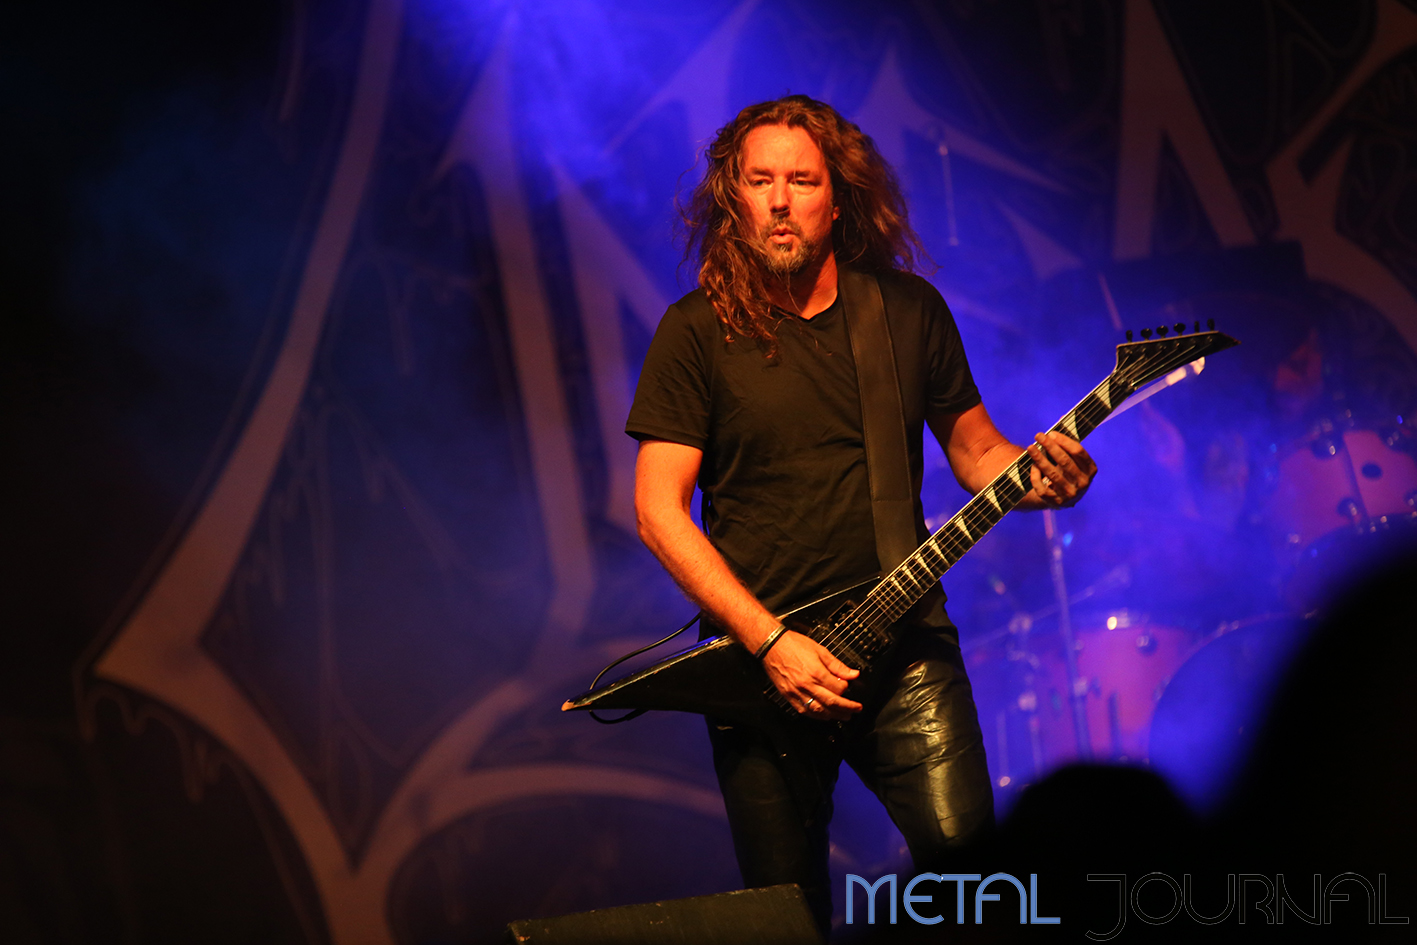 unleashed - leyendas del rock 2019 metal journal pic 3